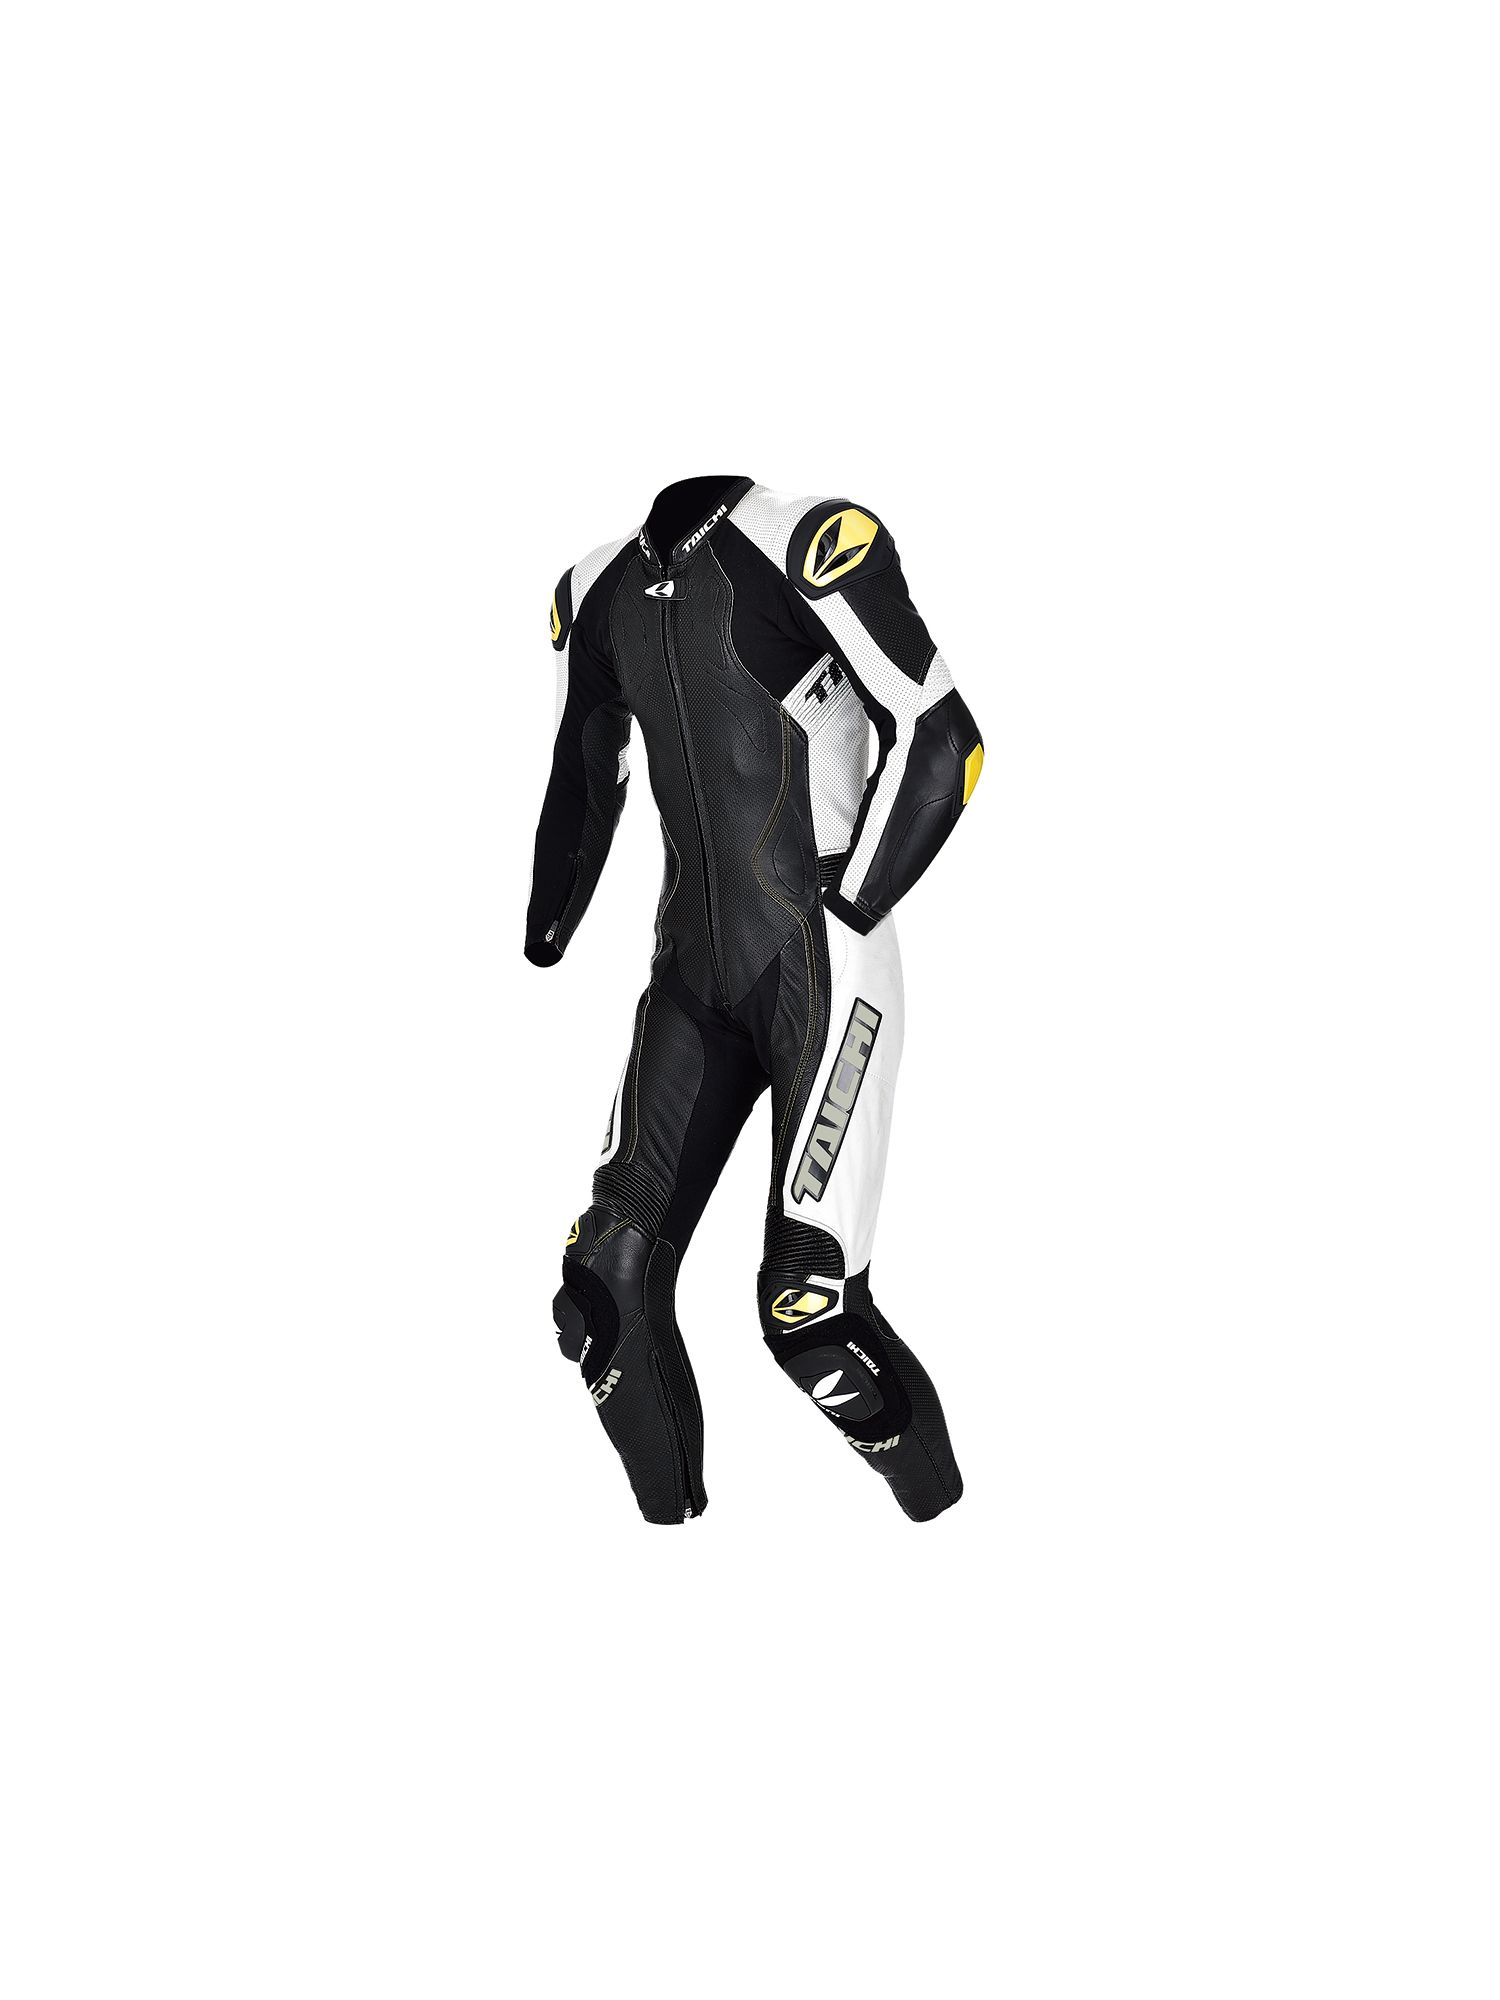 NXL104 | GP-MAX R104 LEATHER SUIT[受注生産]